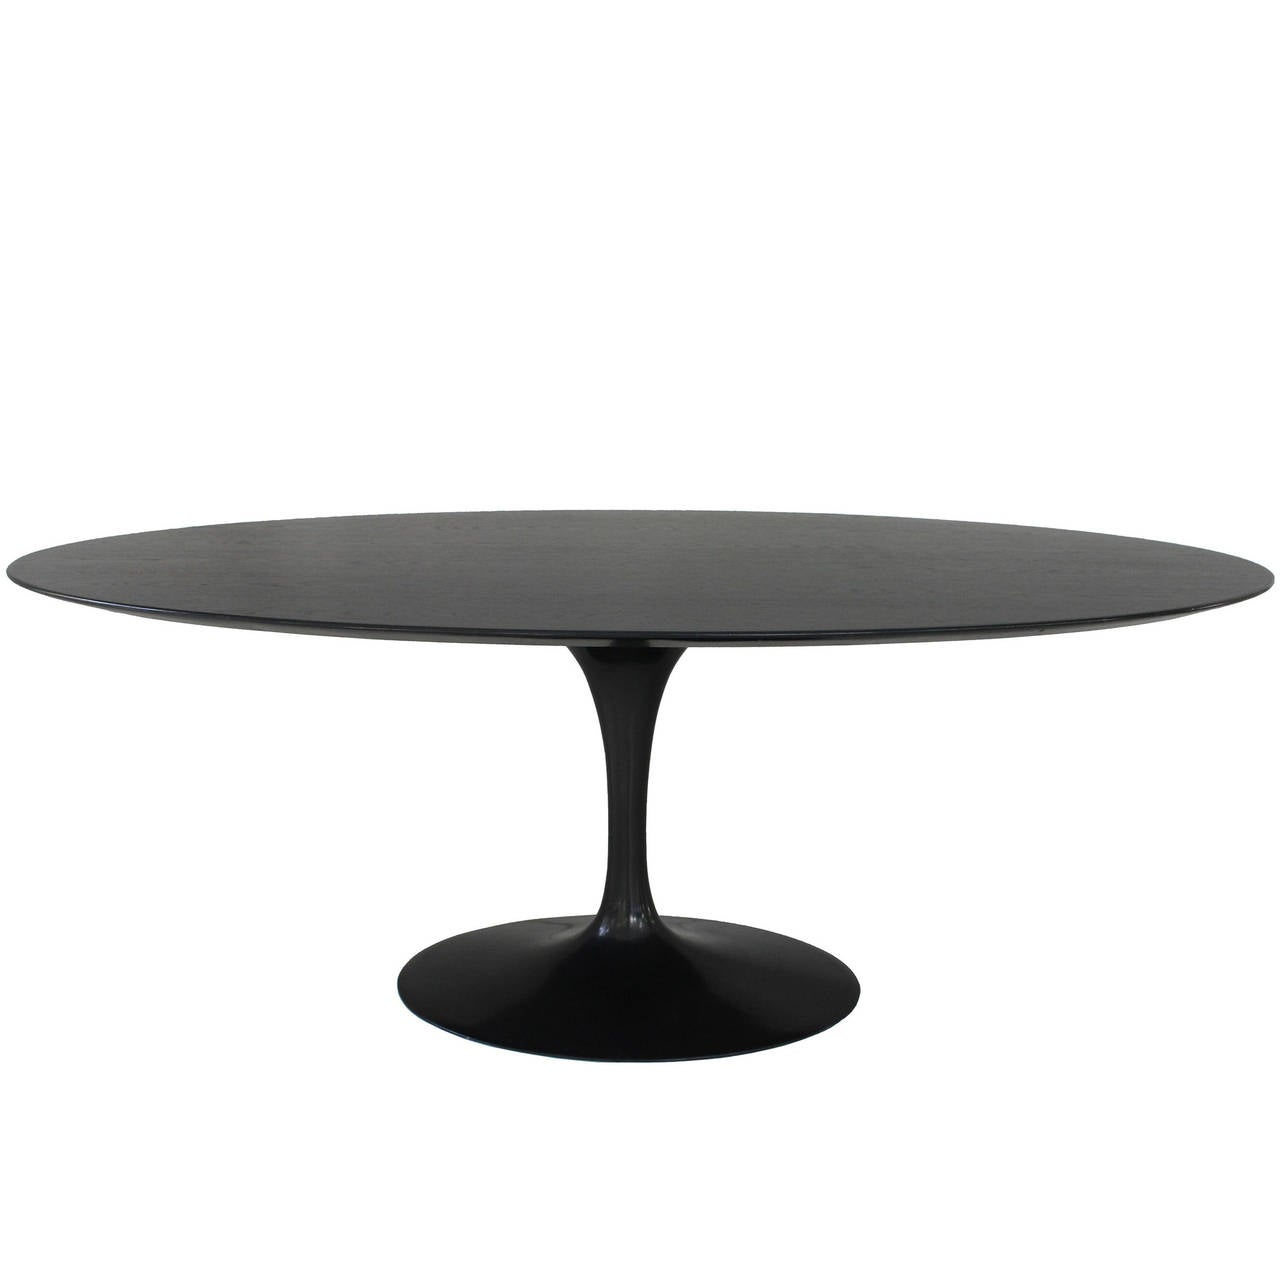 Saarinen Custom Tulip Table At Stdibs - Custom tulip table